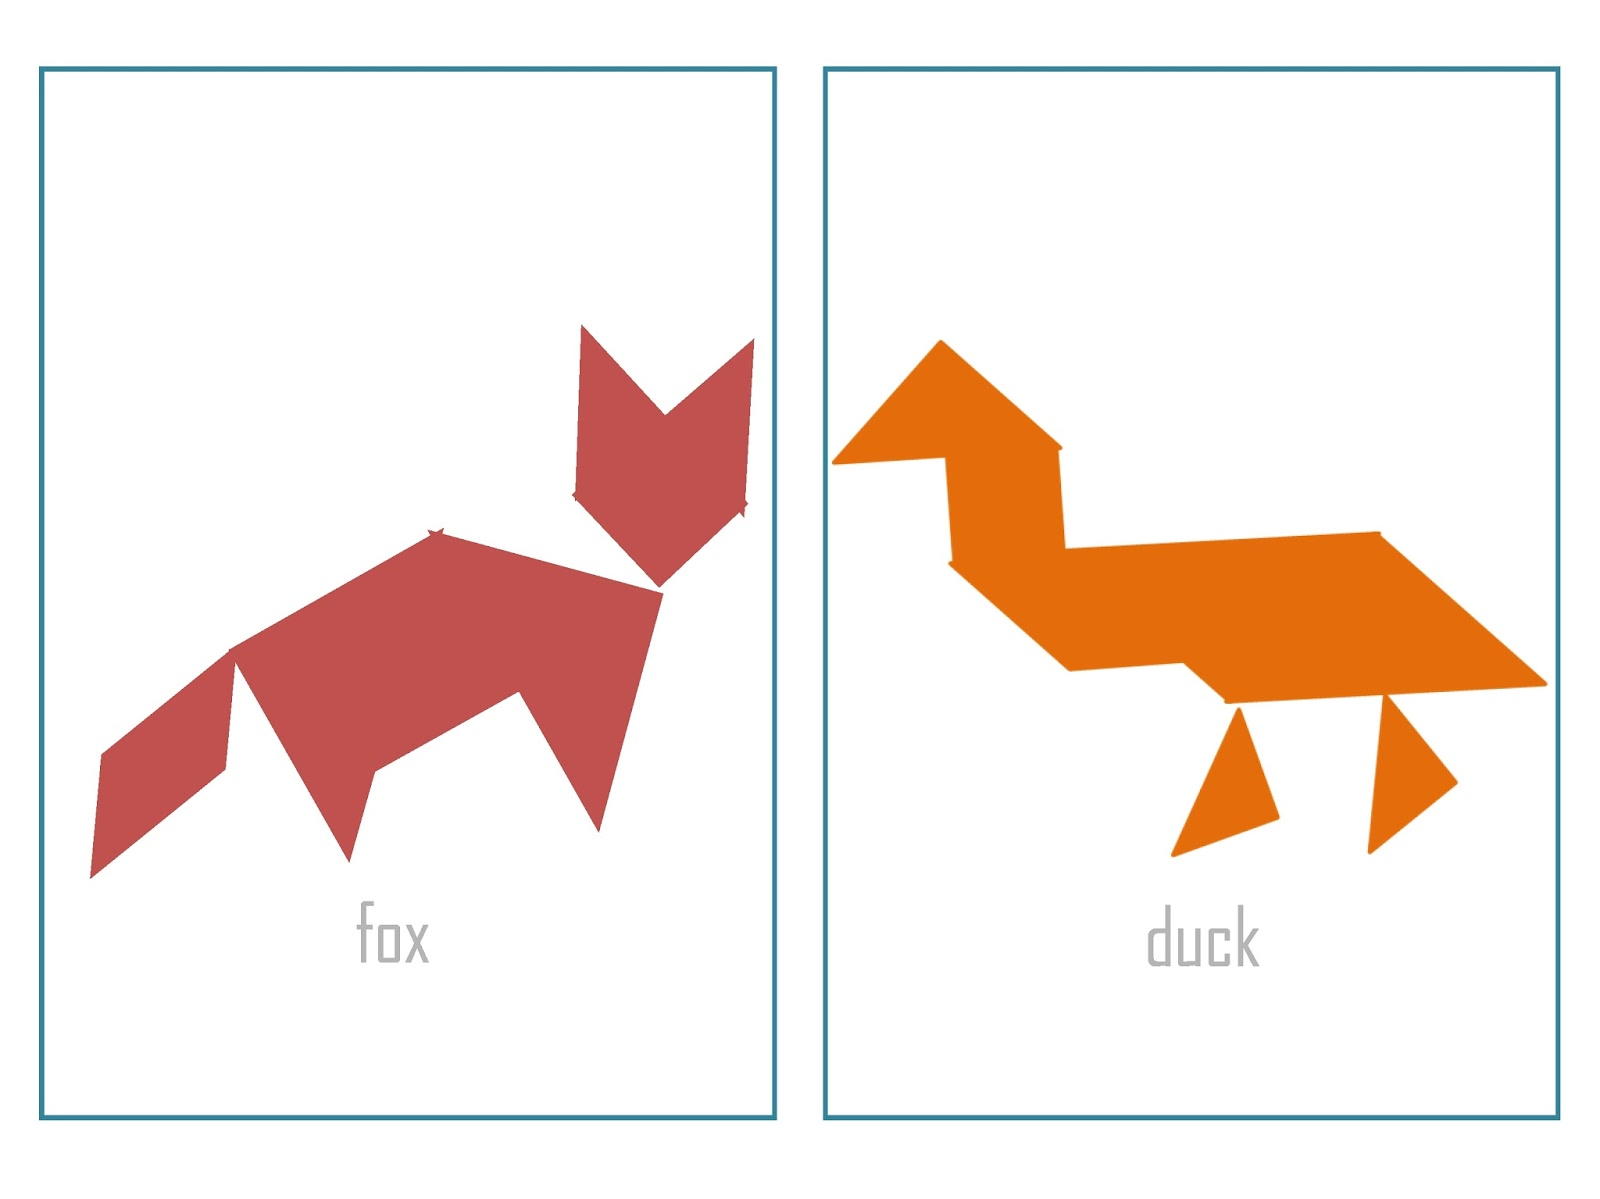 It is an image of Free Printable Tangram Puzzles intended for 2nd grade